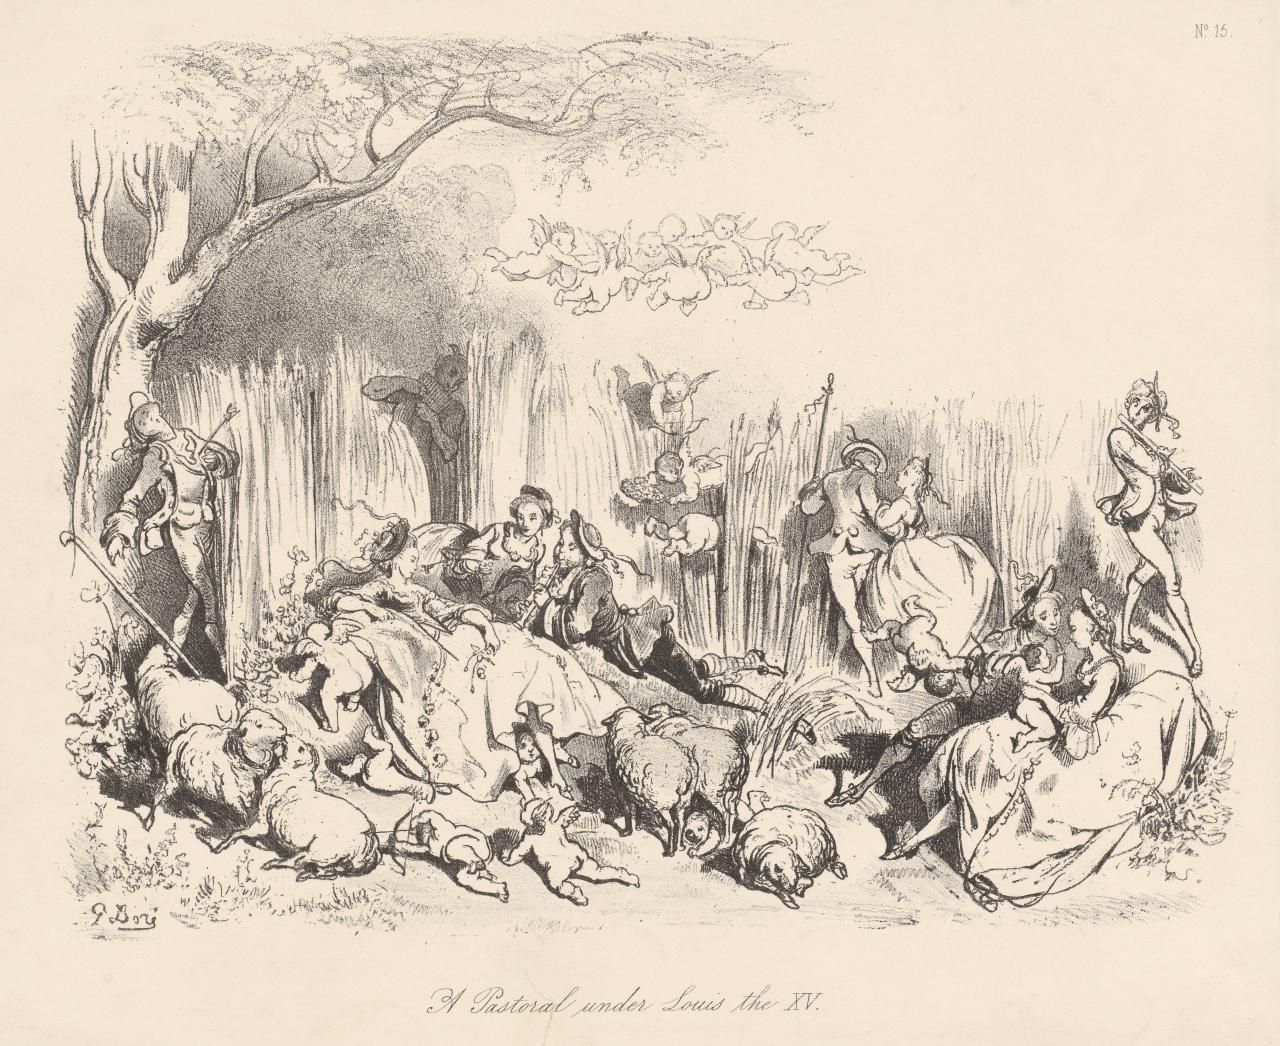 A Pastoral Under Louis the XV